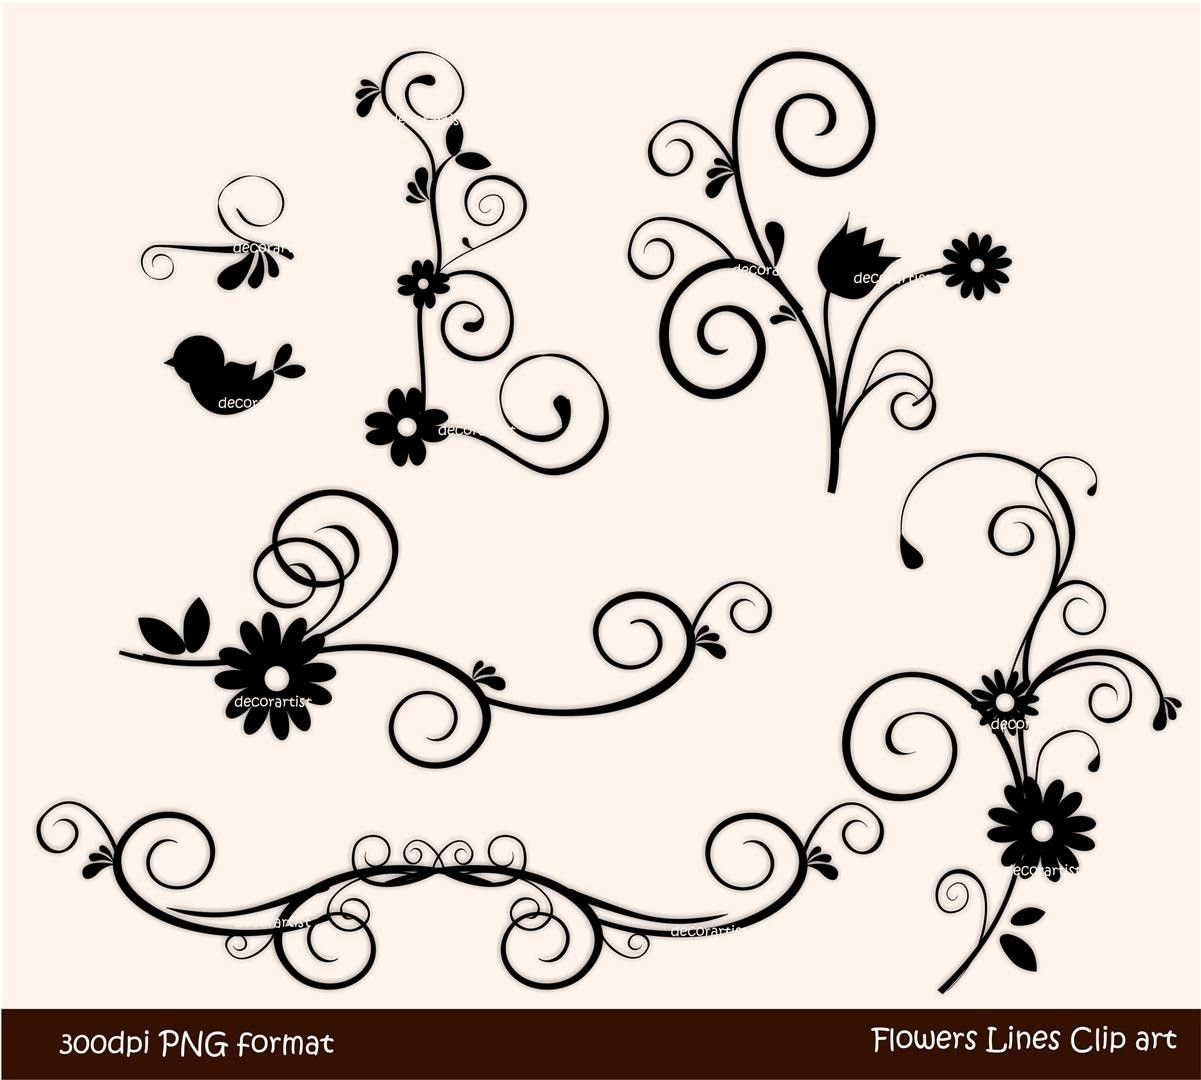 Clip art black and white flowers clip art border black and white clip art black and white flowers clip art border black and white 16338 hd wallpapers mightylinksfo Image collections